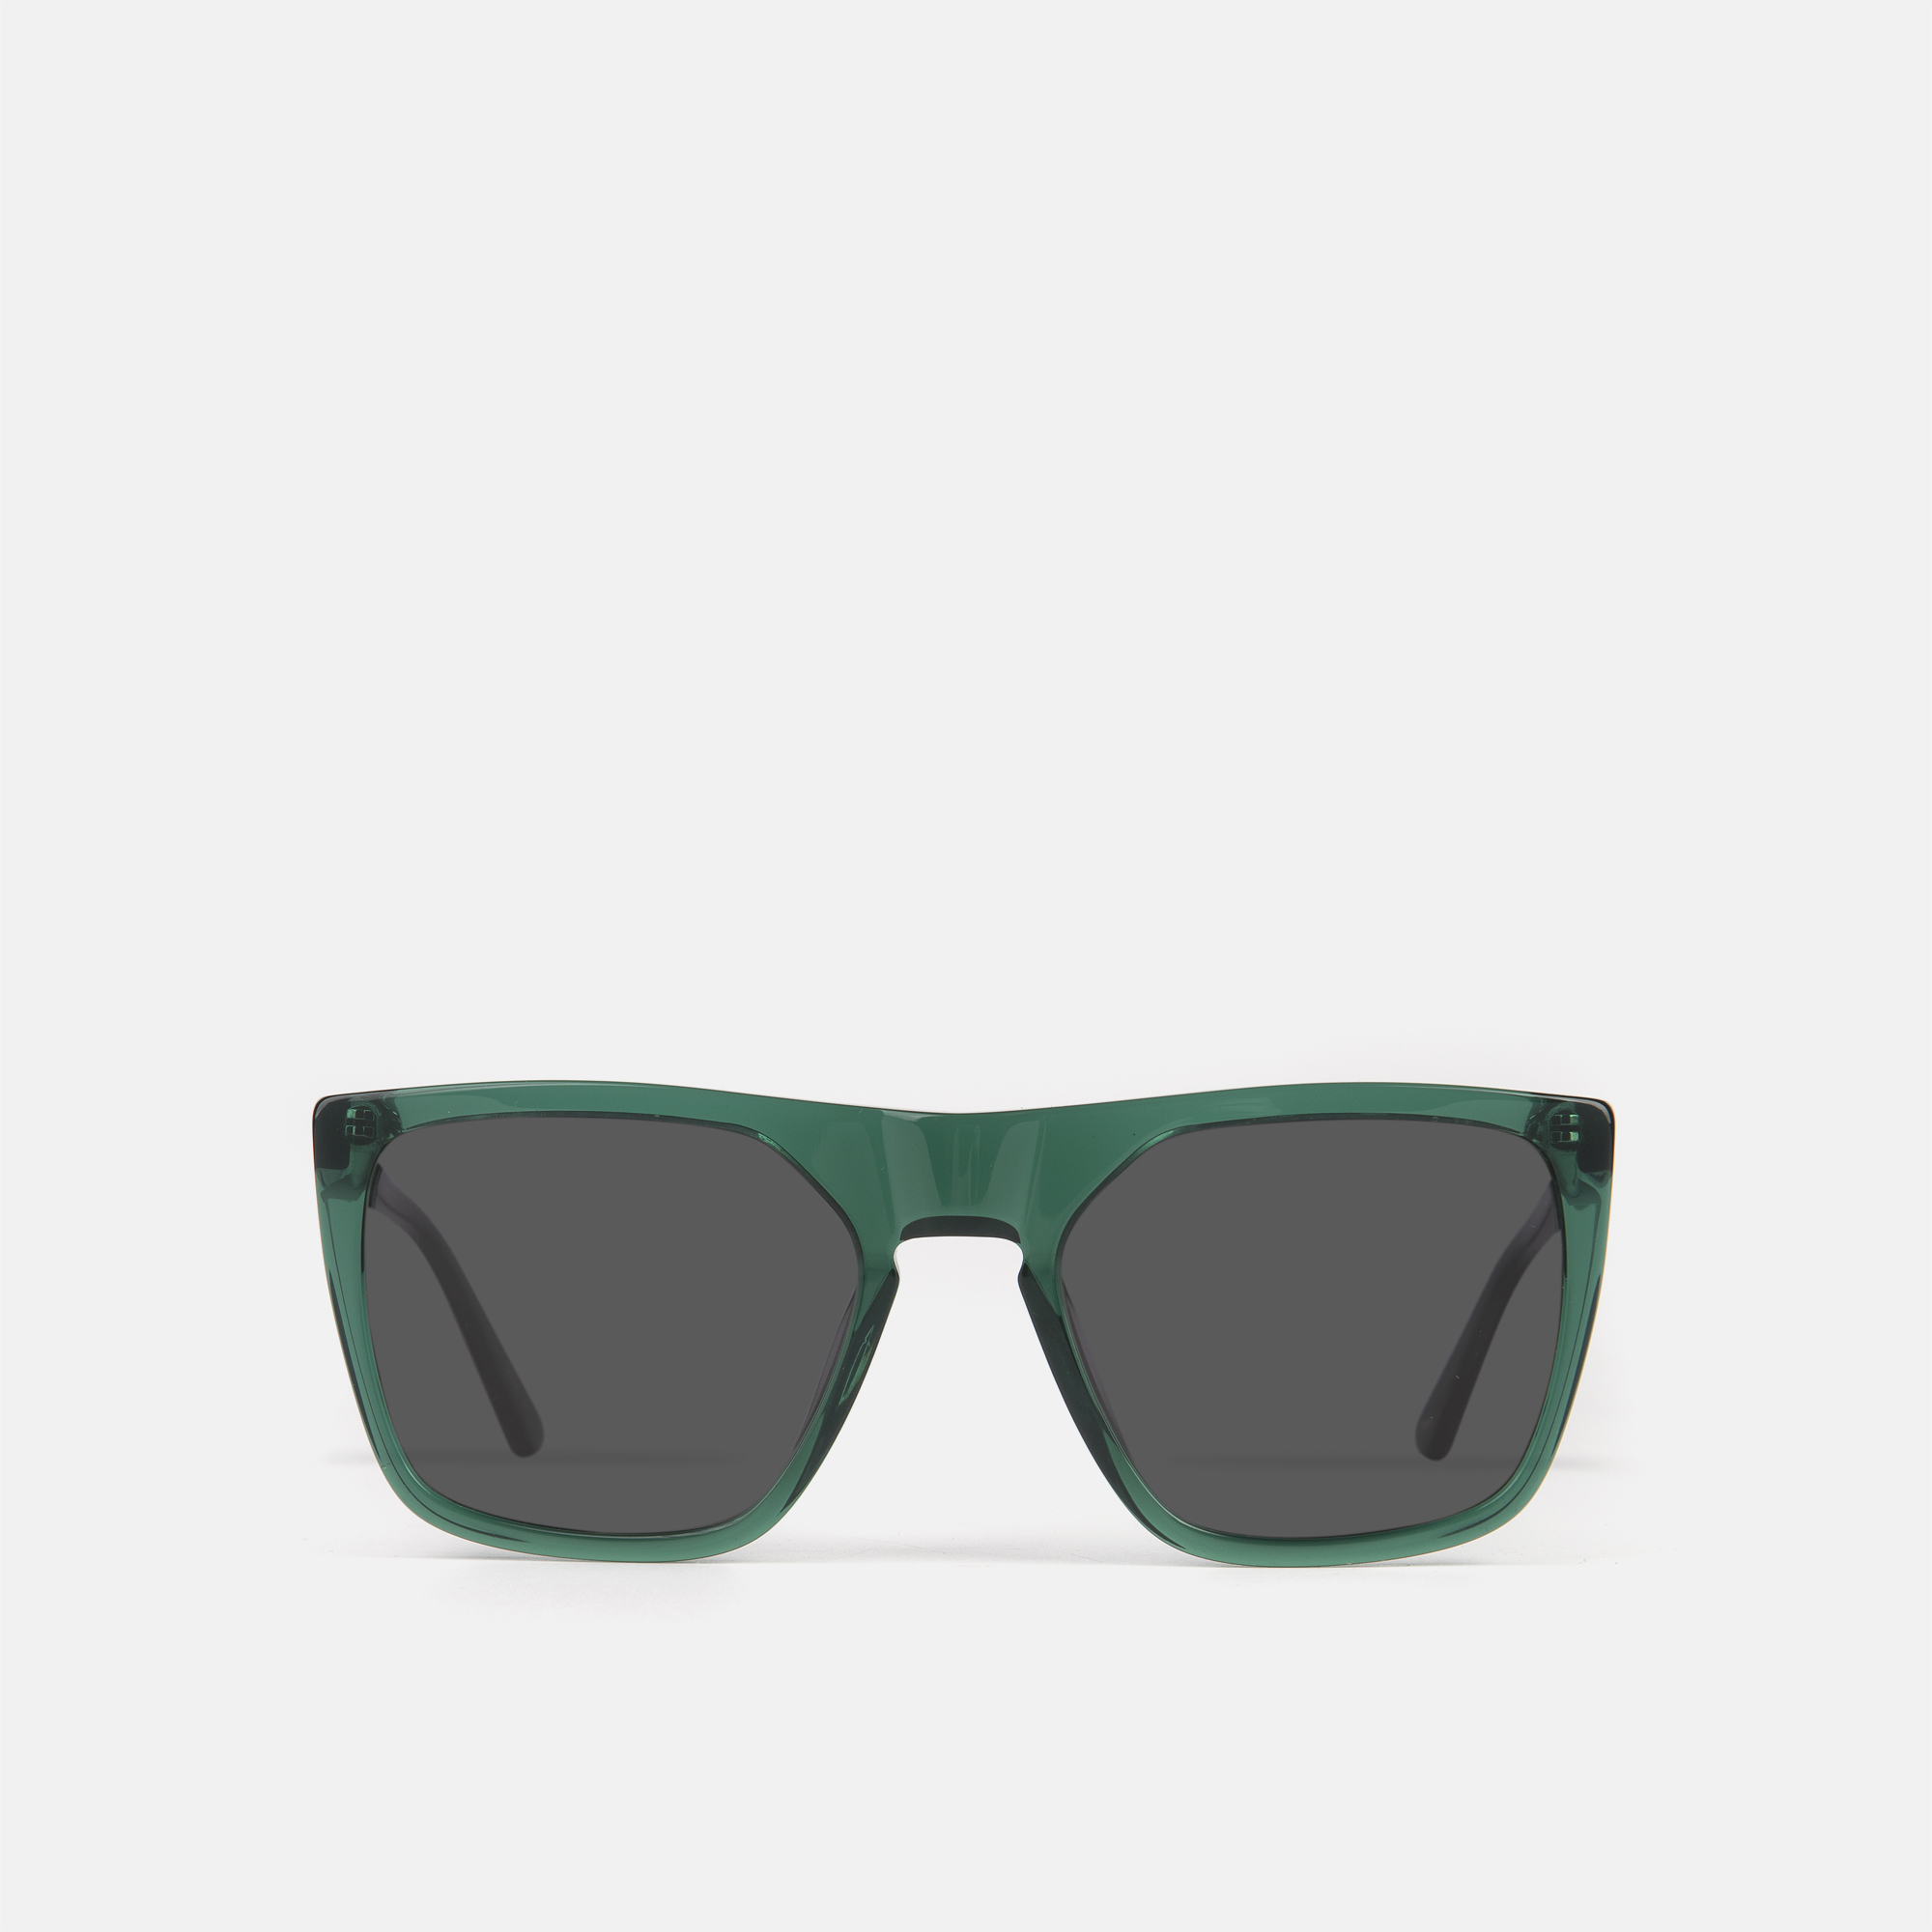 mó sun geek 64A B, green/grey, hi-res